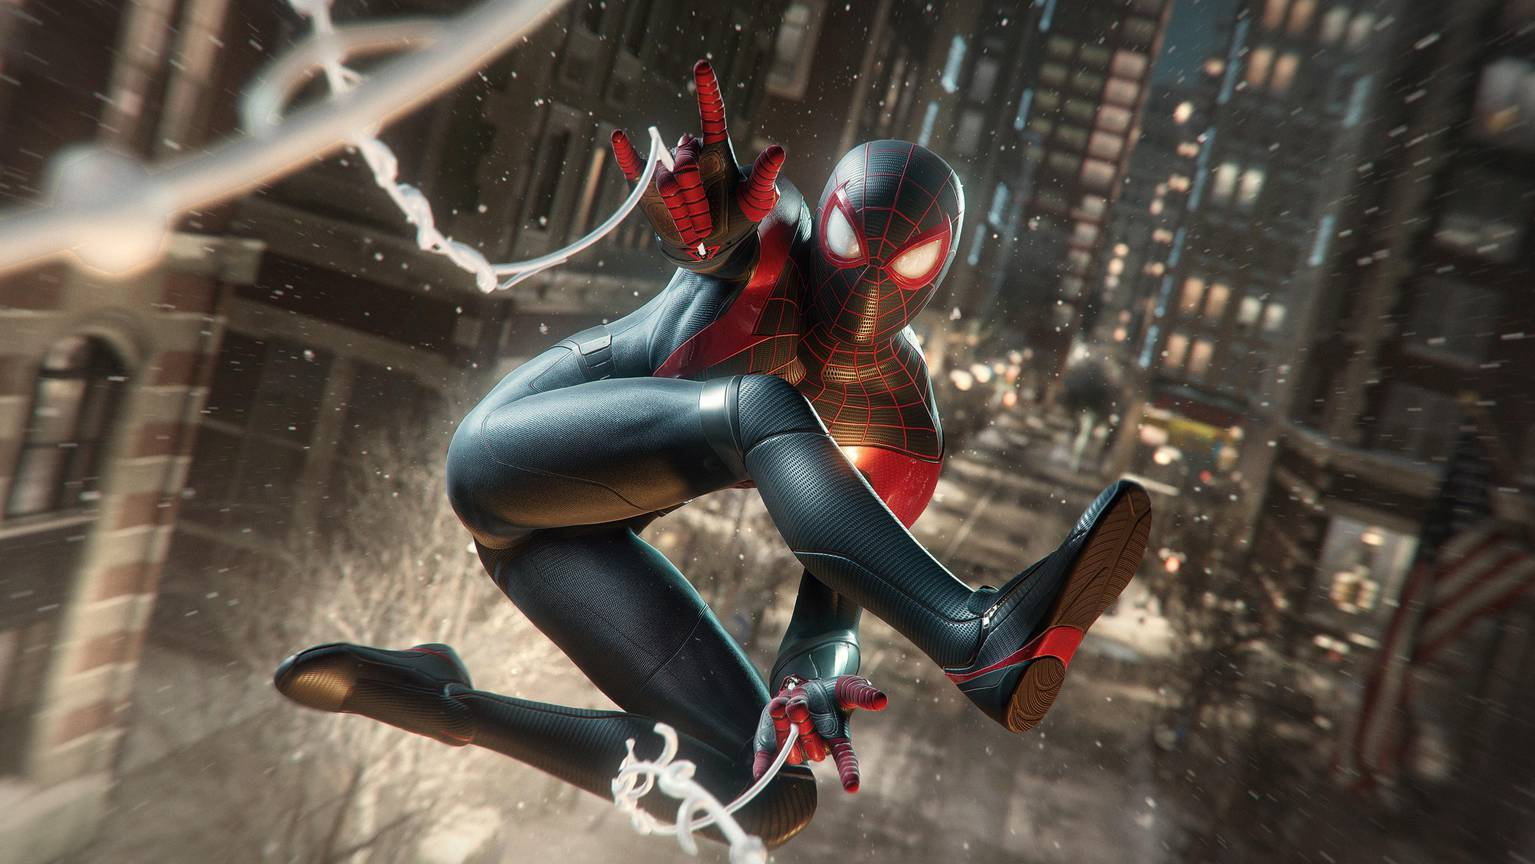 Spider-Man - Miles Morales - in Action